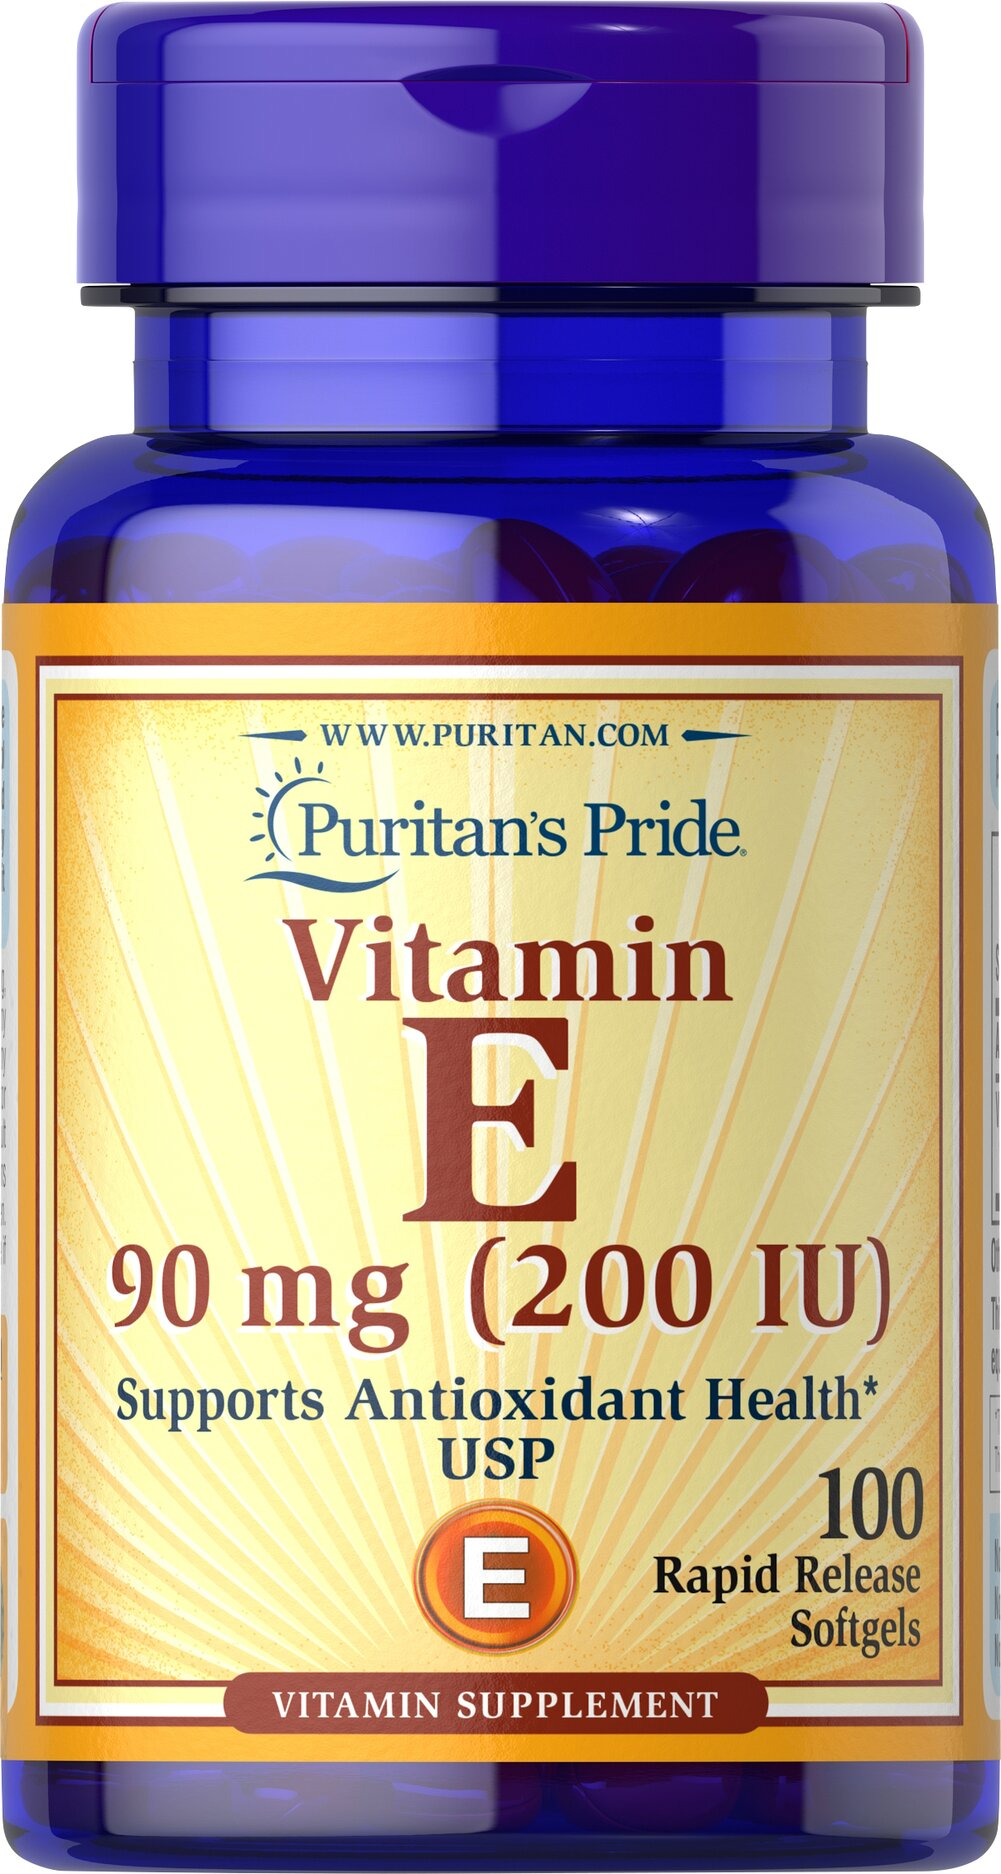 Vitamin E-200 IU <p>Features dl-Alpha Vitamin E, a synthetic form of Vitamin E</p> <p>Promotes heart and circulatory health**</p> <p>Contributes to healthy skin and immune function**</p> <p>Rapid release liquid softgels are easy to swallow</p> <p>One a day formula</p> 100 Softgels 200 IU $9.29